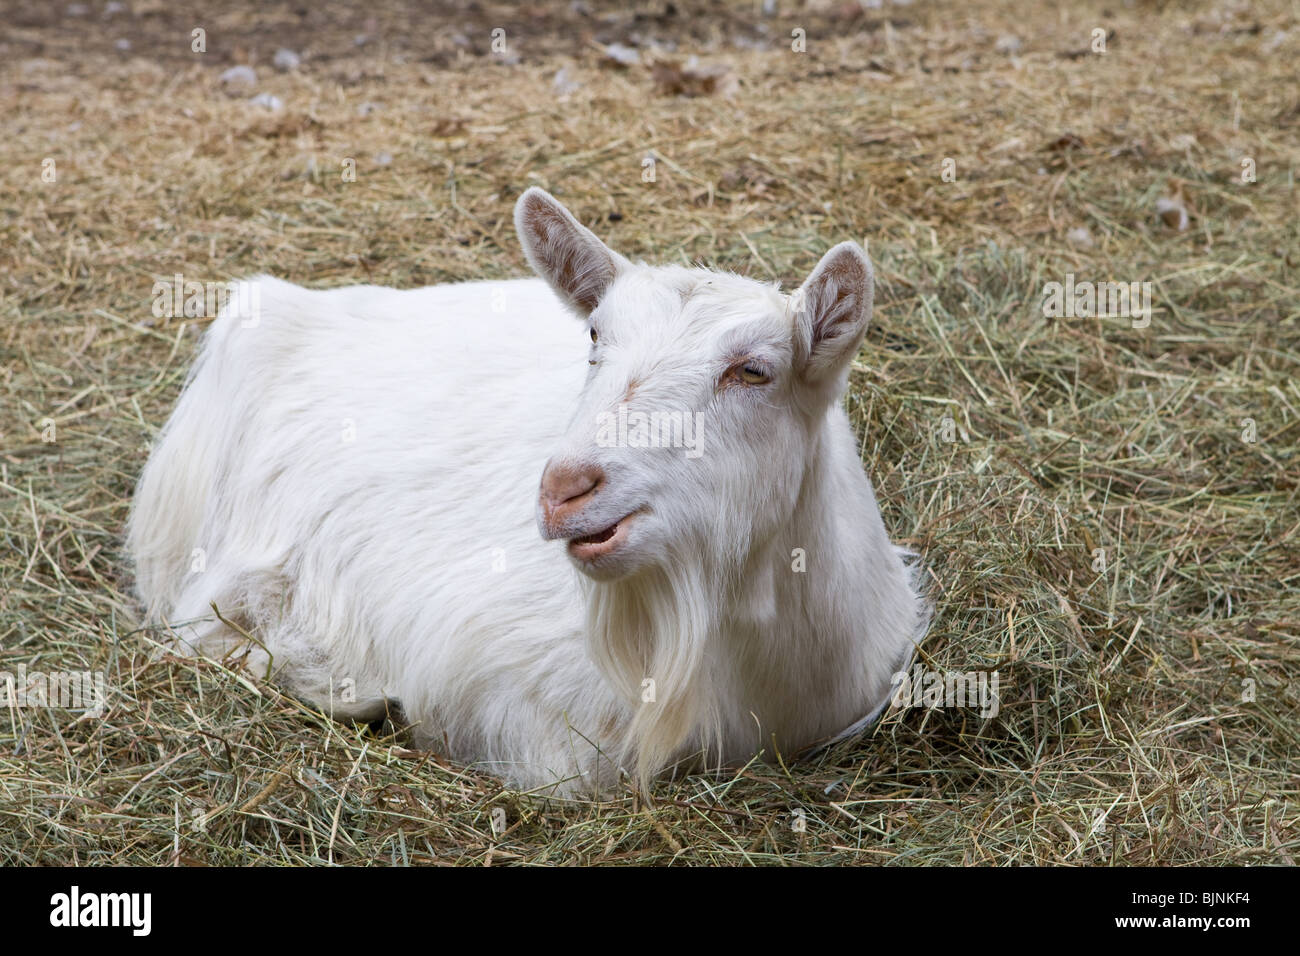 Goat laying down in its enclosure, ruminating behind the stable, surrounded by a maple forest. - Stock Image